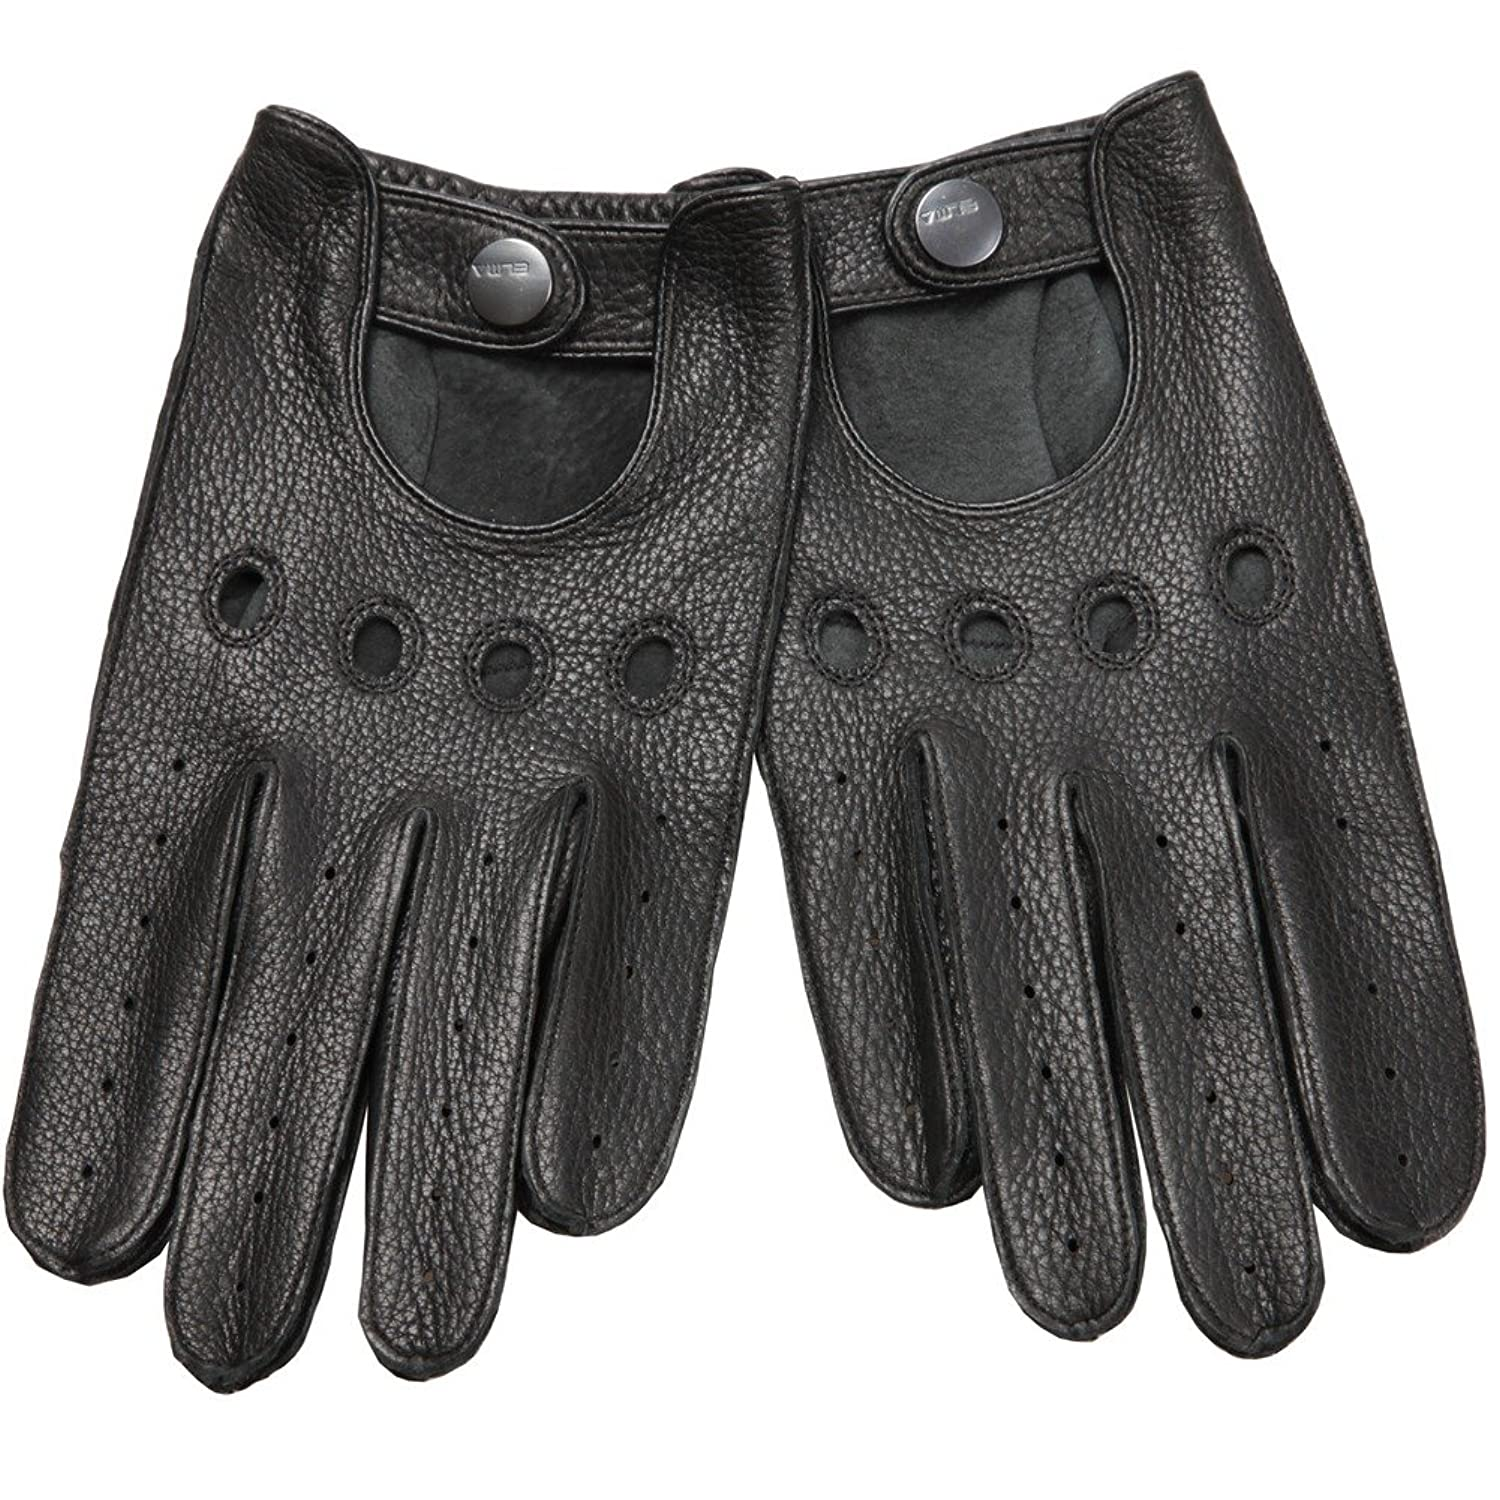 Driving gloves unlined - Elma Men S Unlined Deerskin Leather Driving Gloves Cutout At Back S Black At Amazon Men S Clothing Store Cold Weather Gloves